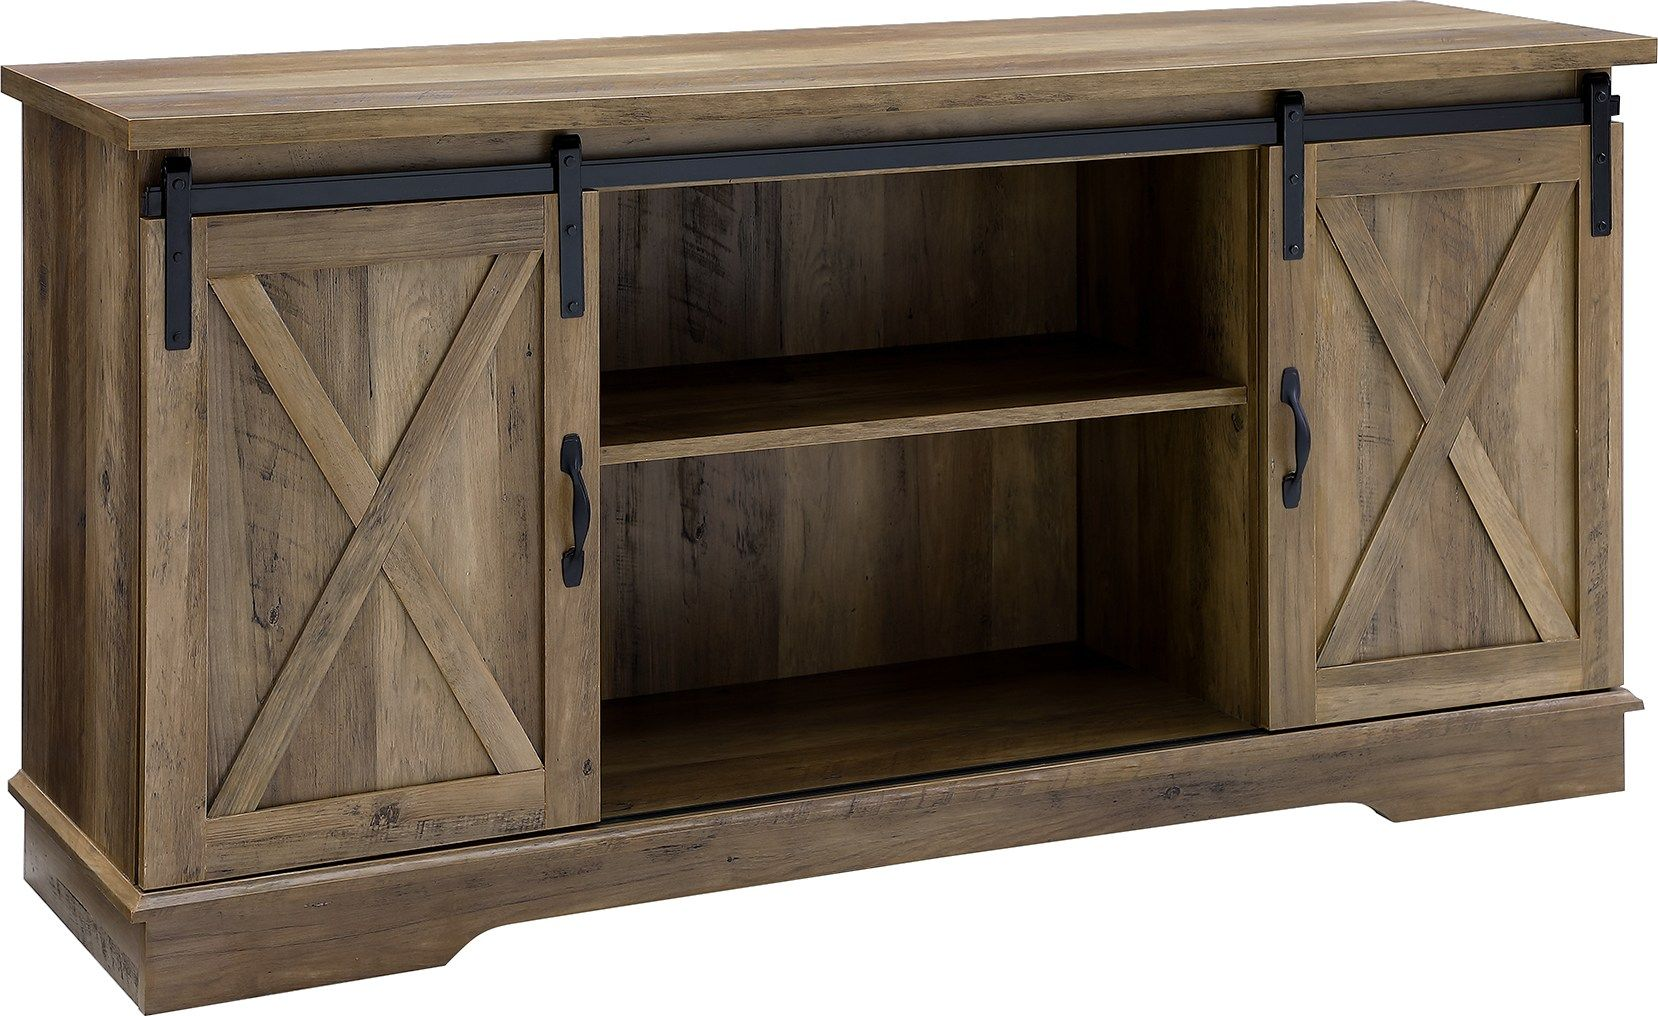 Coneflower Oak 58 In Console 297 0 58w X 16d X 28h